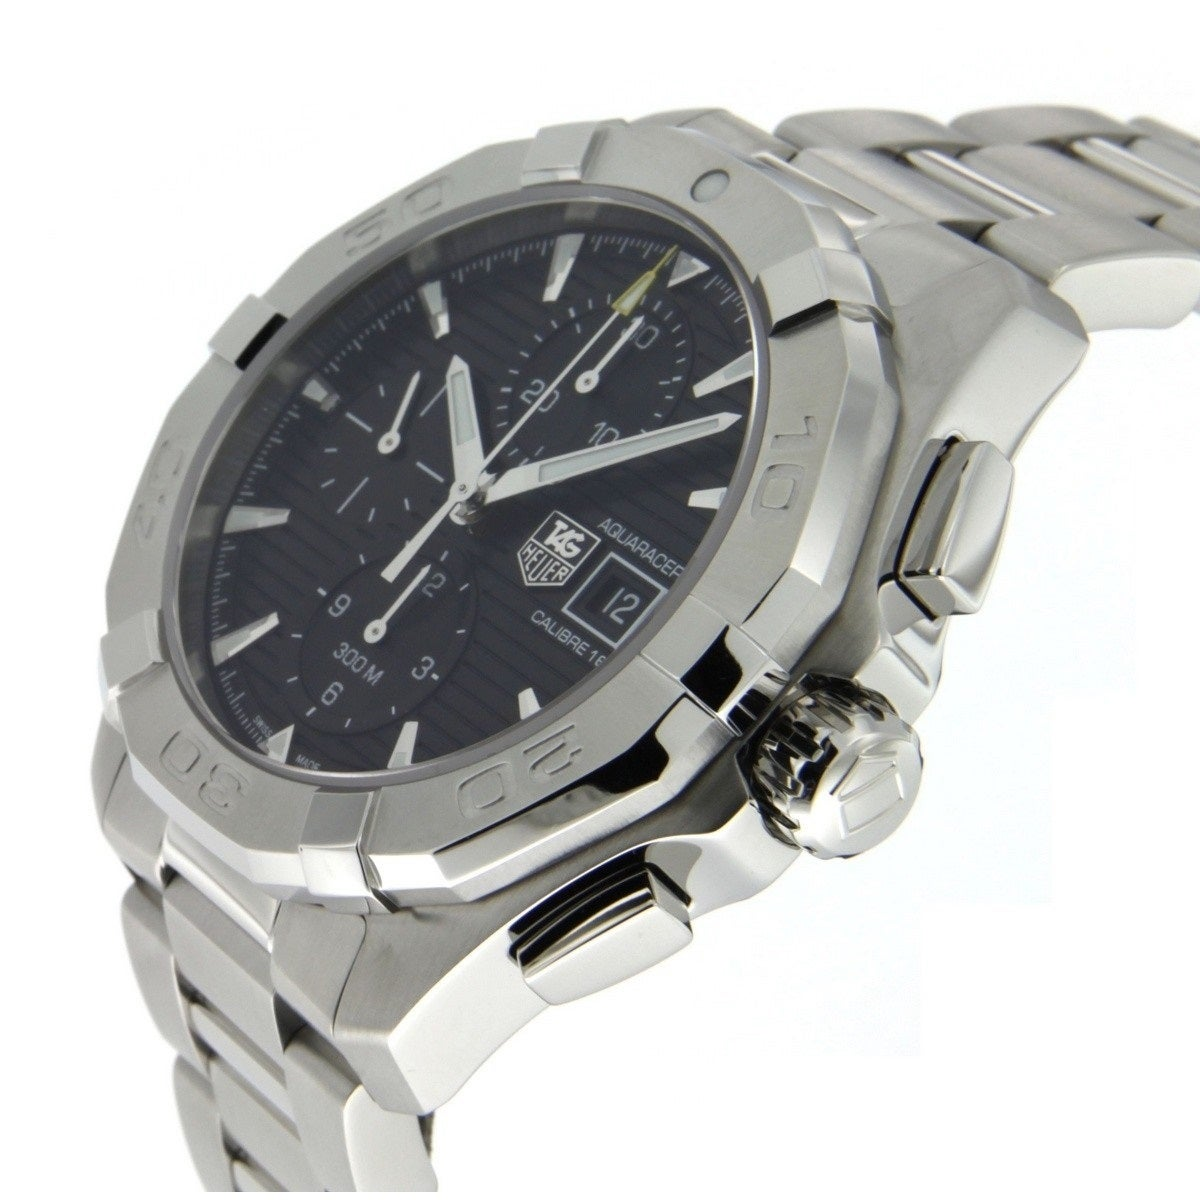 meet 1a381 69460 Tag Heuer Men's CAY2110.BA0925 'Aquaracer' Chronograph Automatic Stainless  Steel Watch